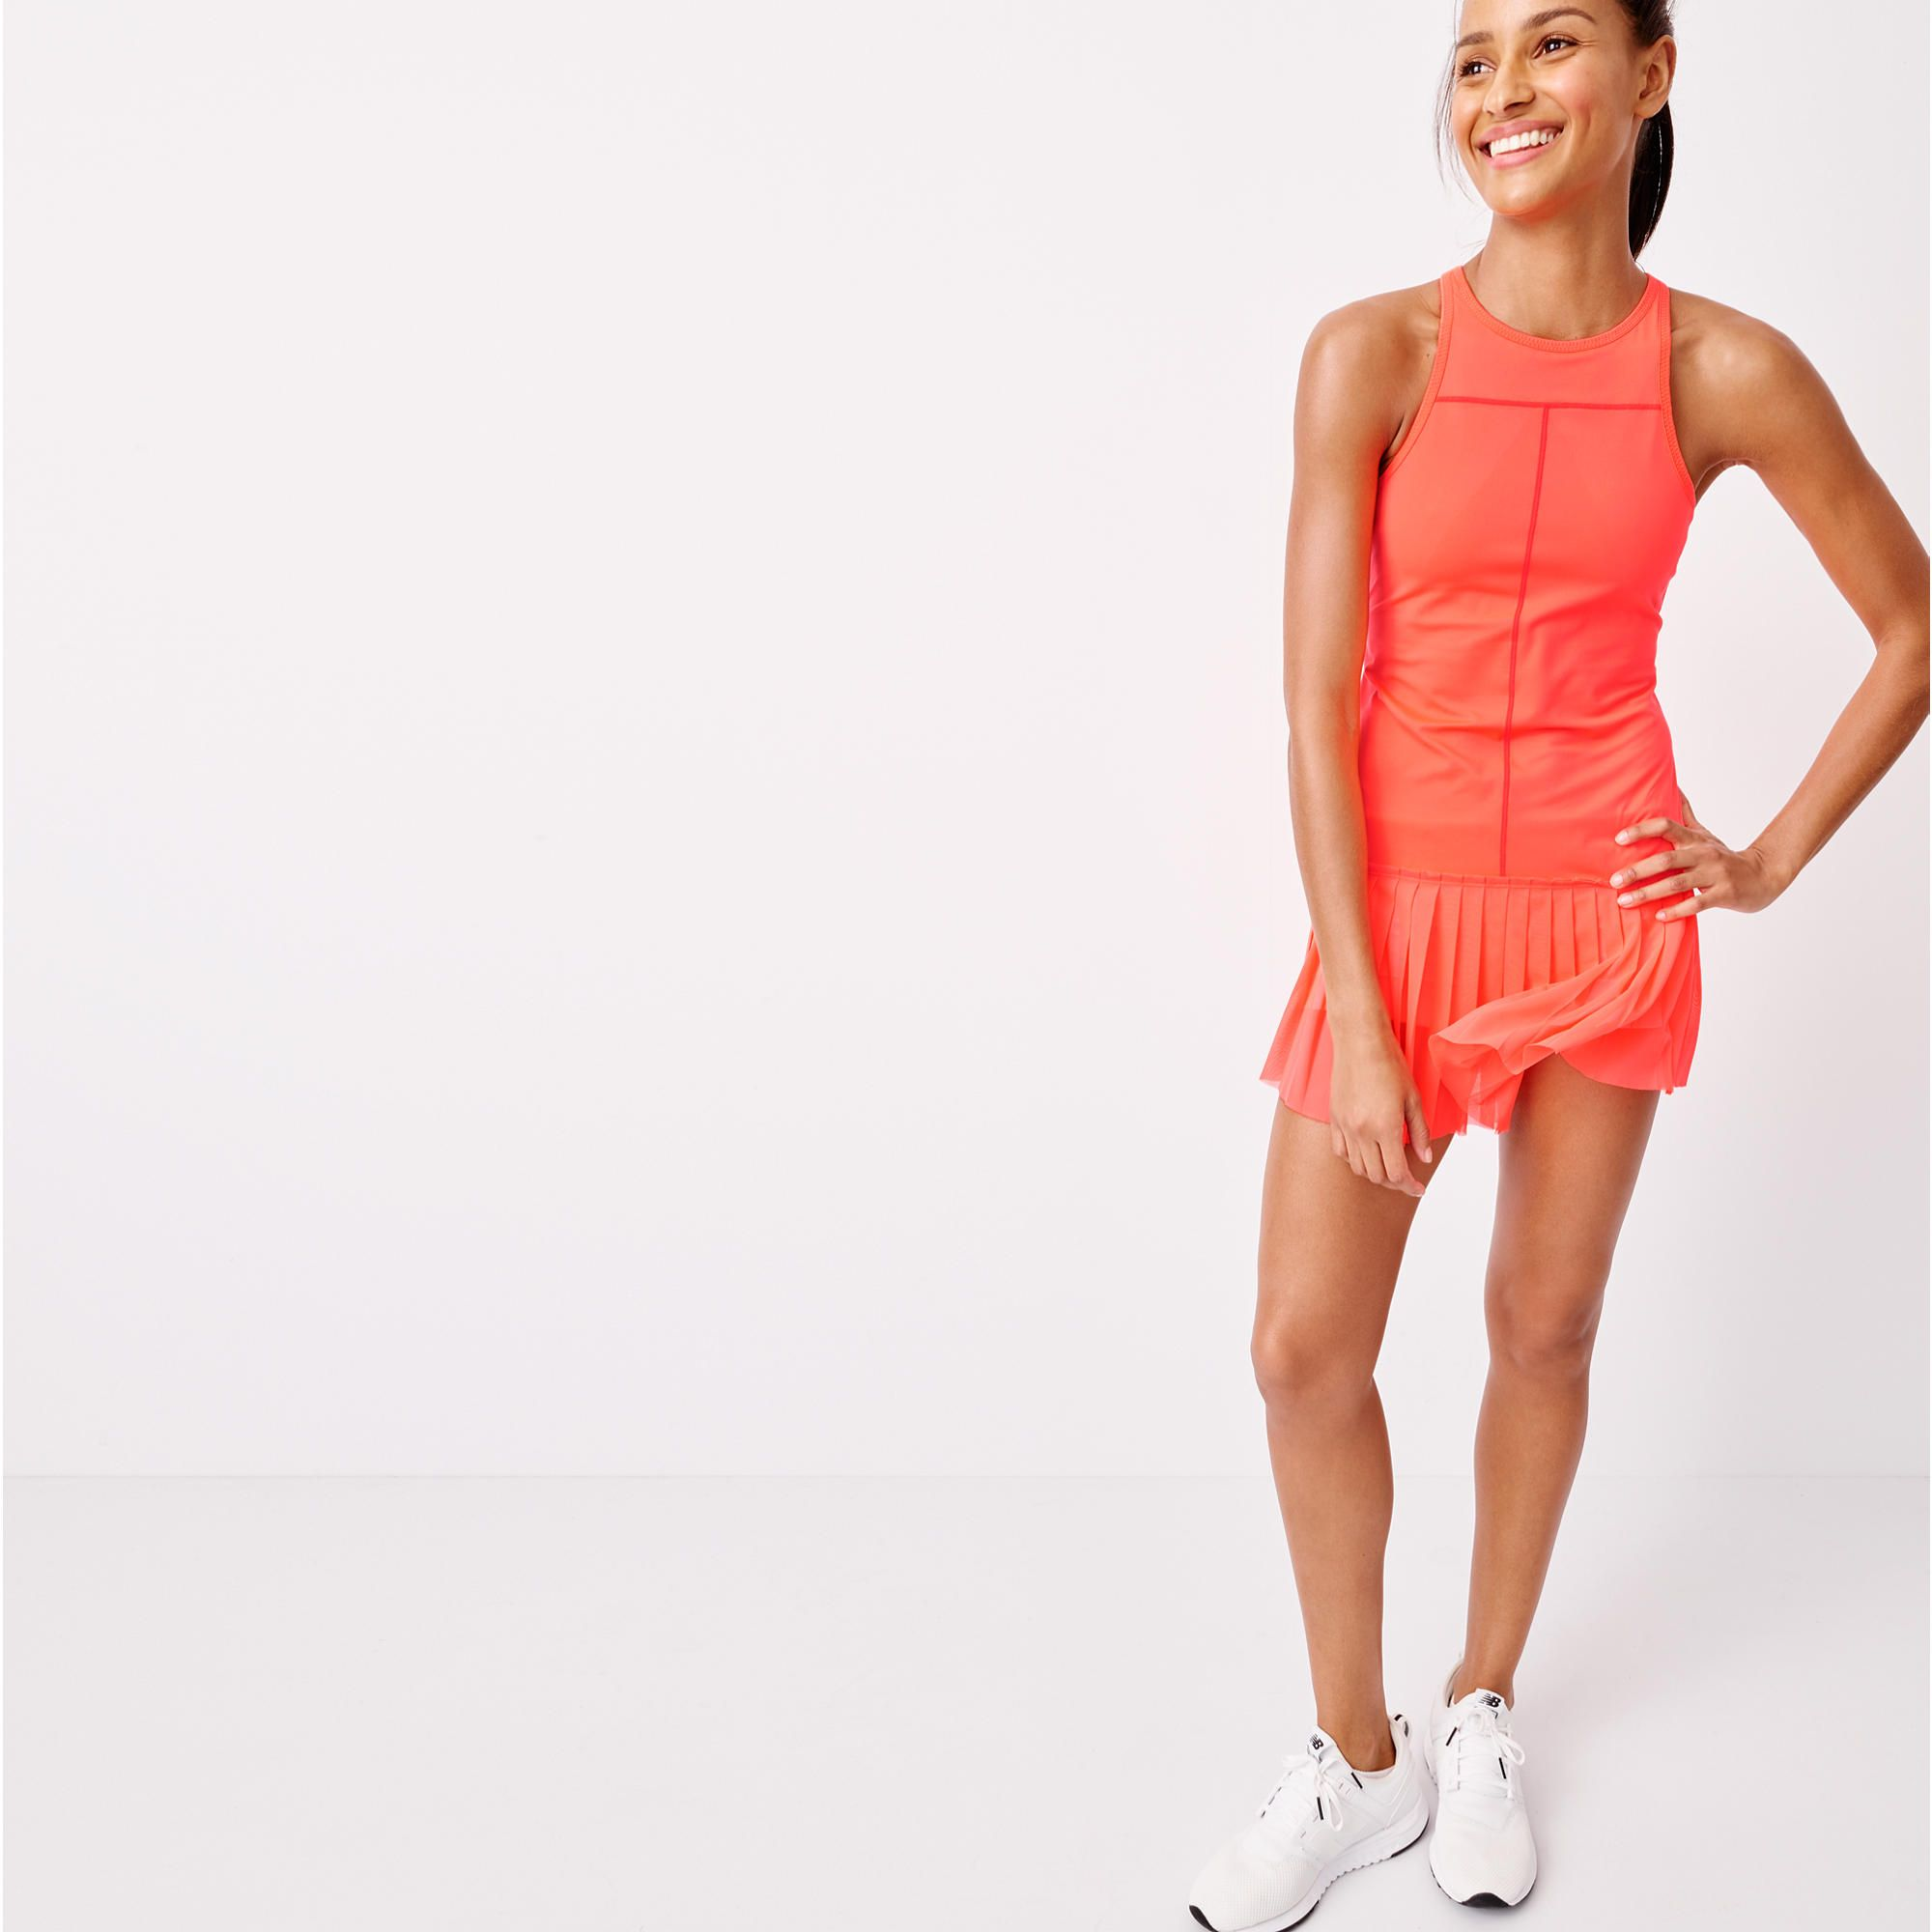 New Balance Reg For J Crew Tennis Dress Someday When I Play Tennis Haha Tennis Dress Active Wear For Women Clothes For Women